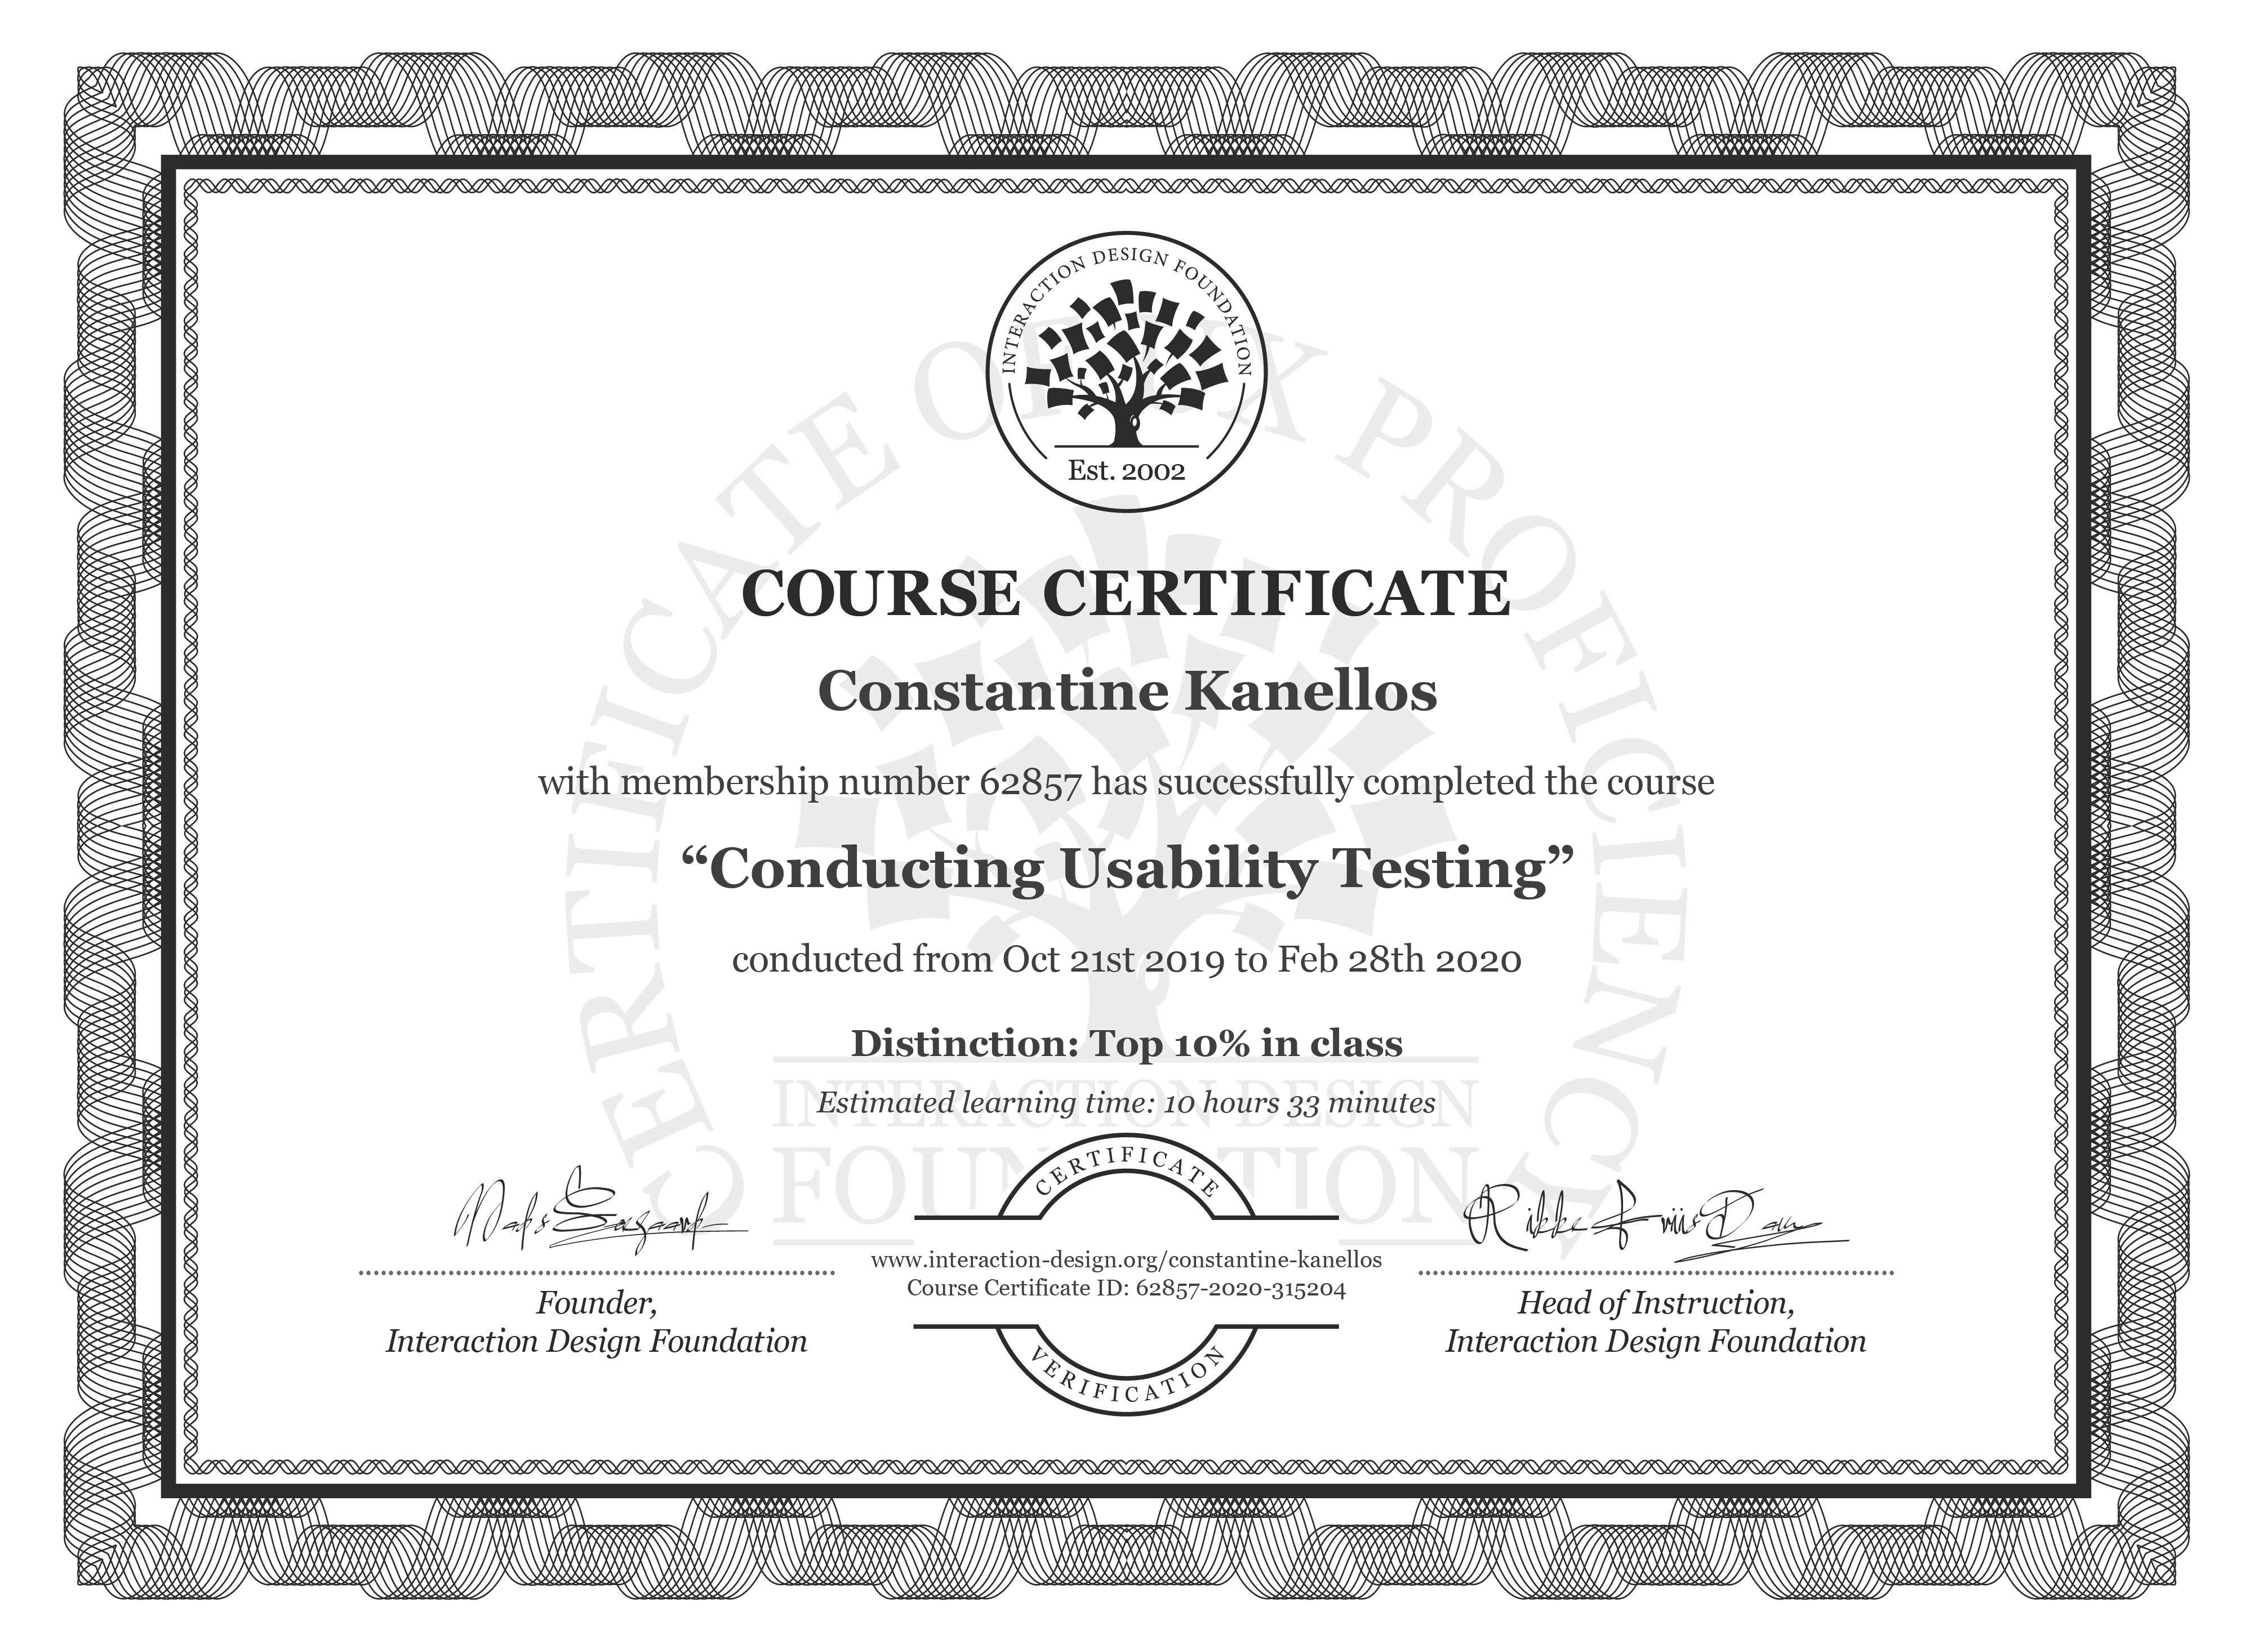 Constantine Kanellos's Course Certificate: Conducting Usability Testing